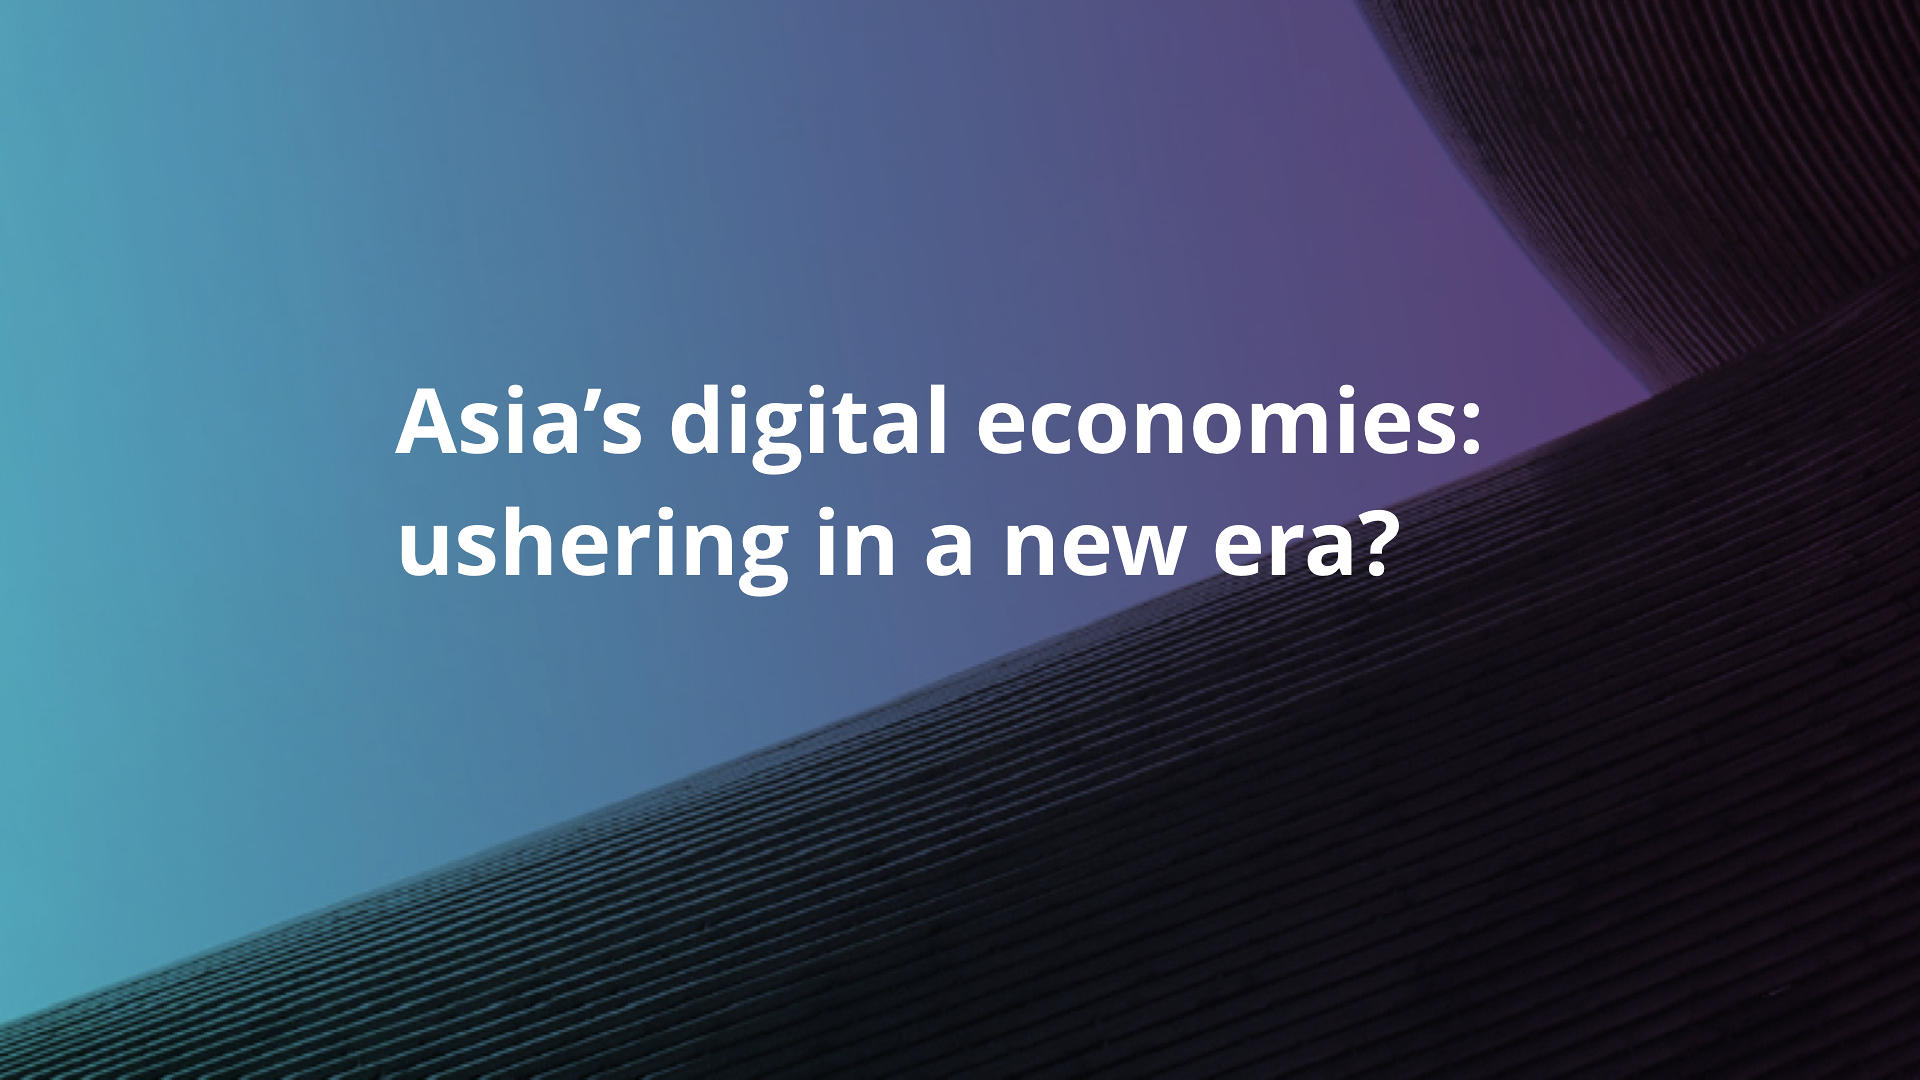 Asia's digital economies: ushering in a new era?